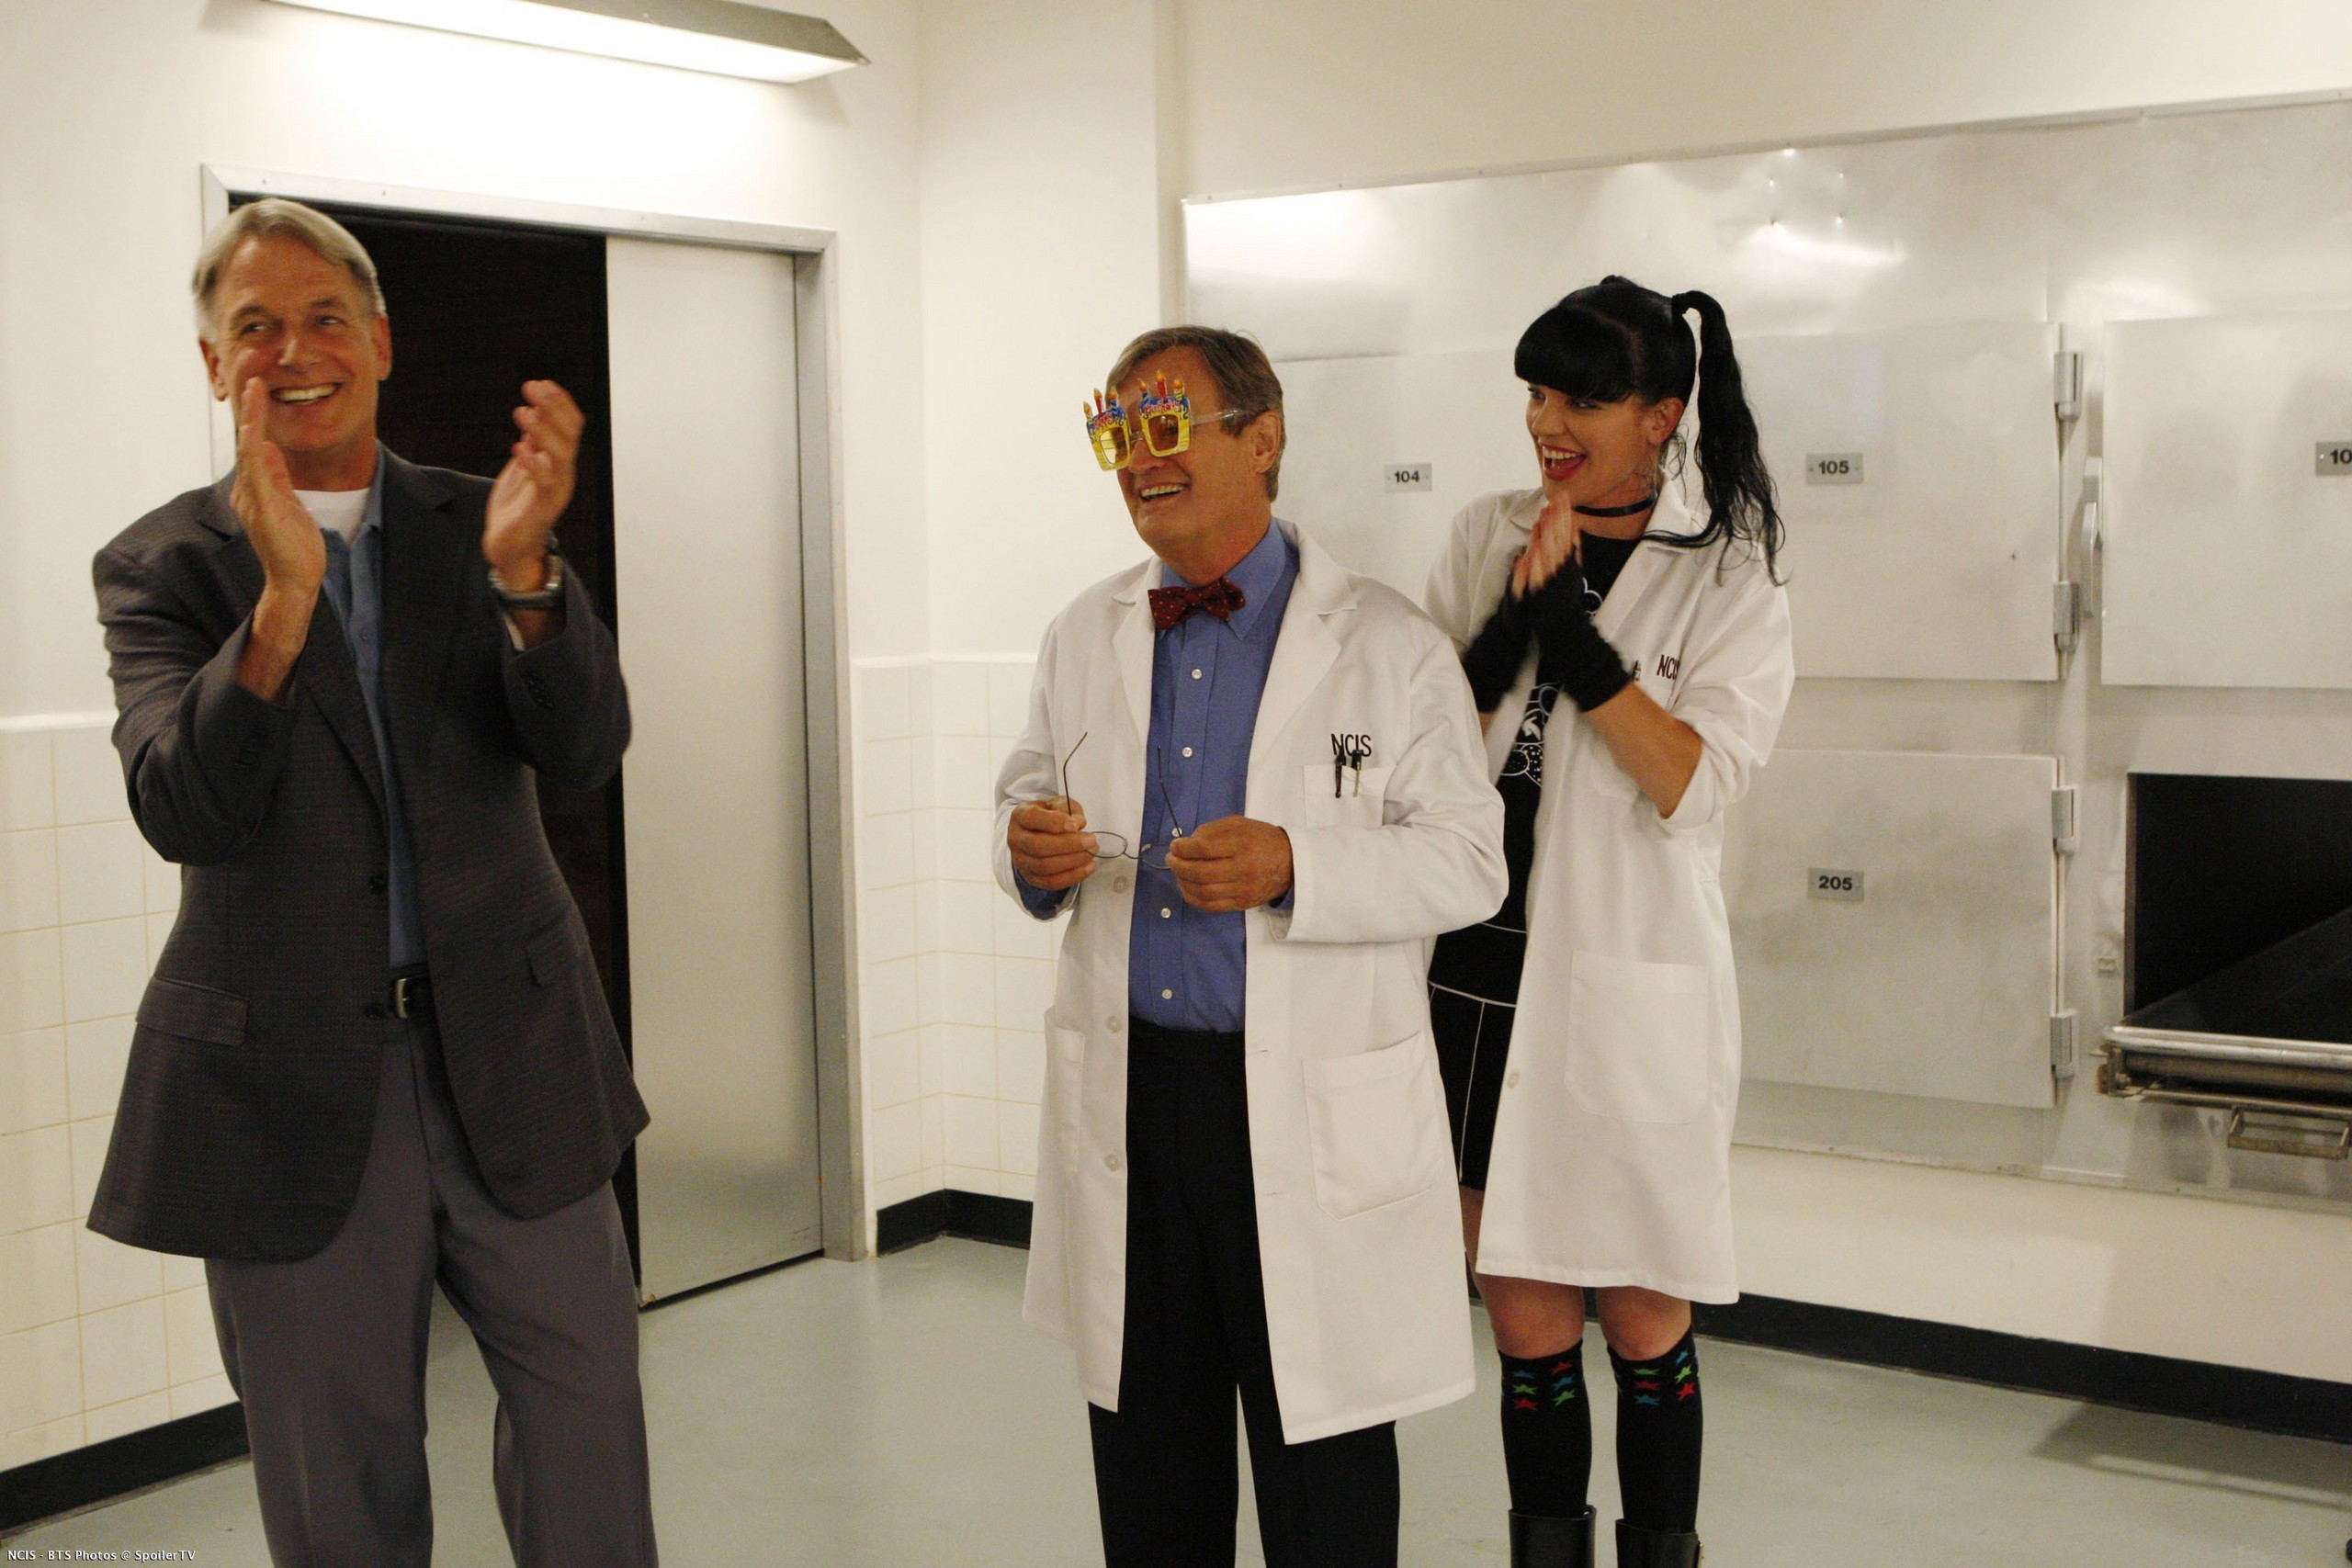 NCIS Behind the Scenes